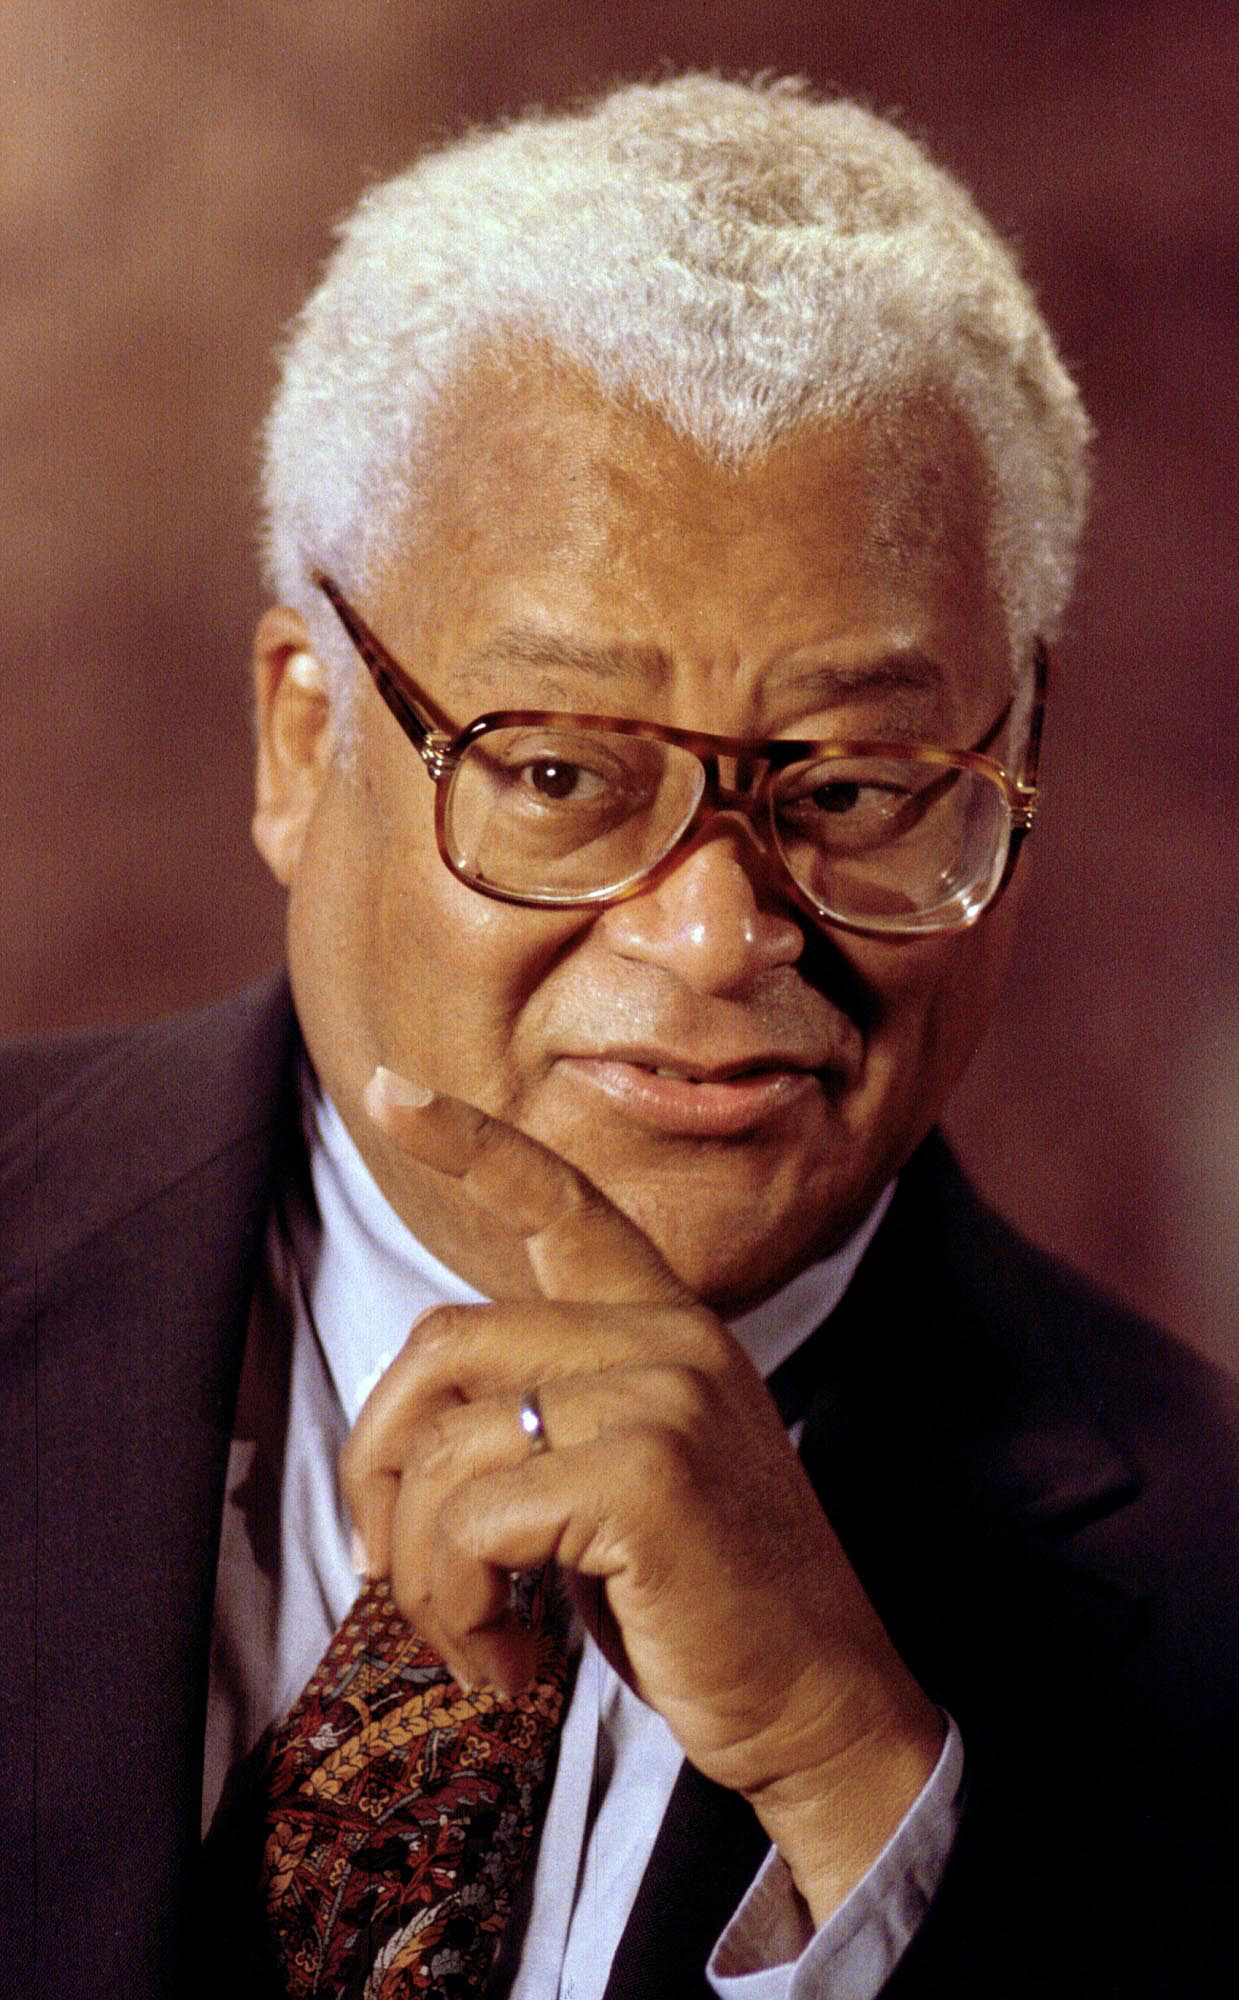 The Rev. James Lawson. Photo by Mike DuBose, UMNS.